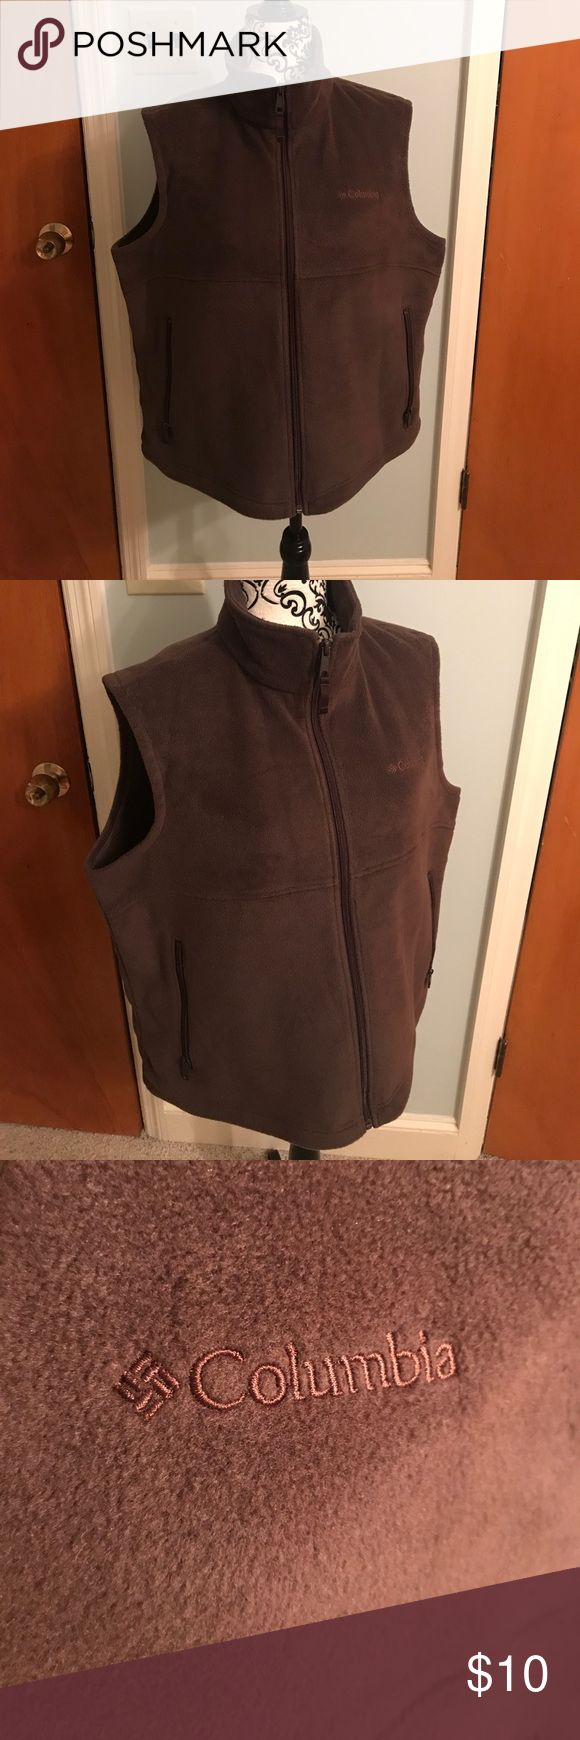 Women's Fleece Columbia Vest Women's Fleece Columbia Vest. Brown with two side pockets. In Excellent Condition. No stains or signs of wear! Columbia Jackets & Coats Vests